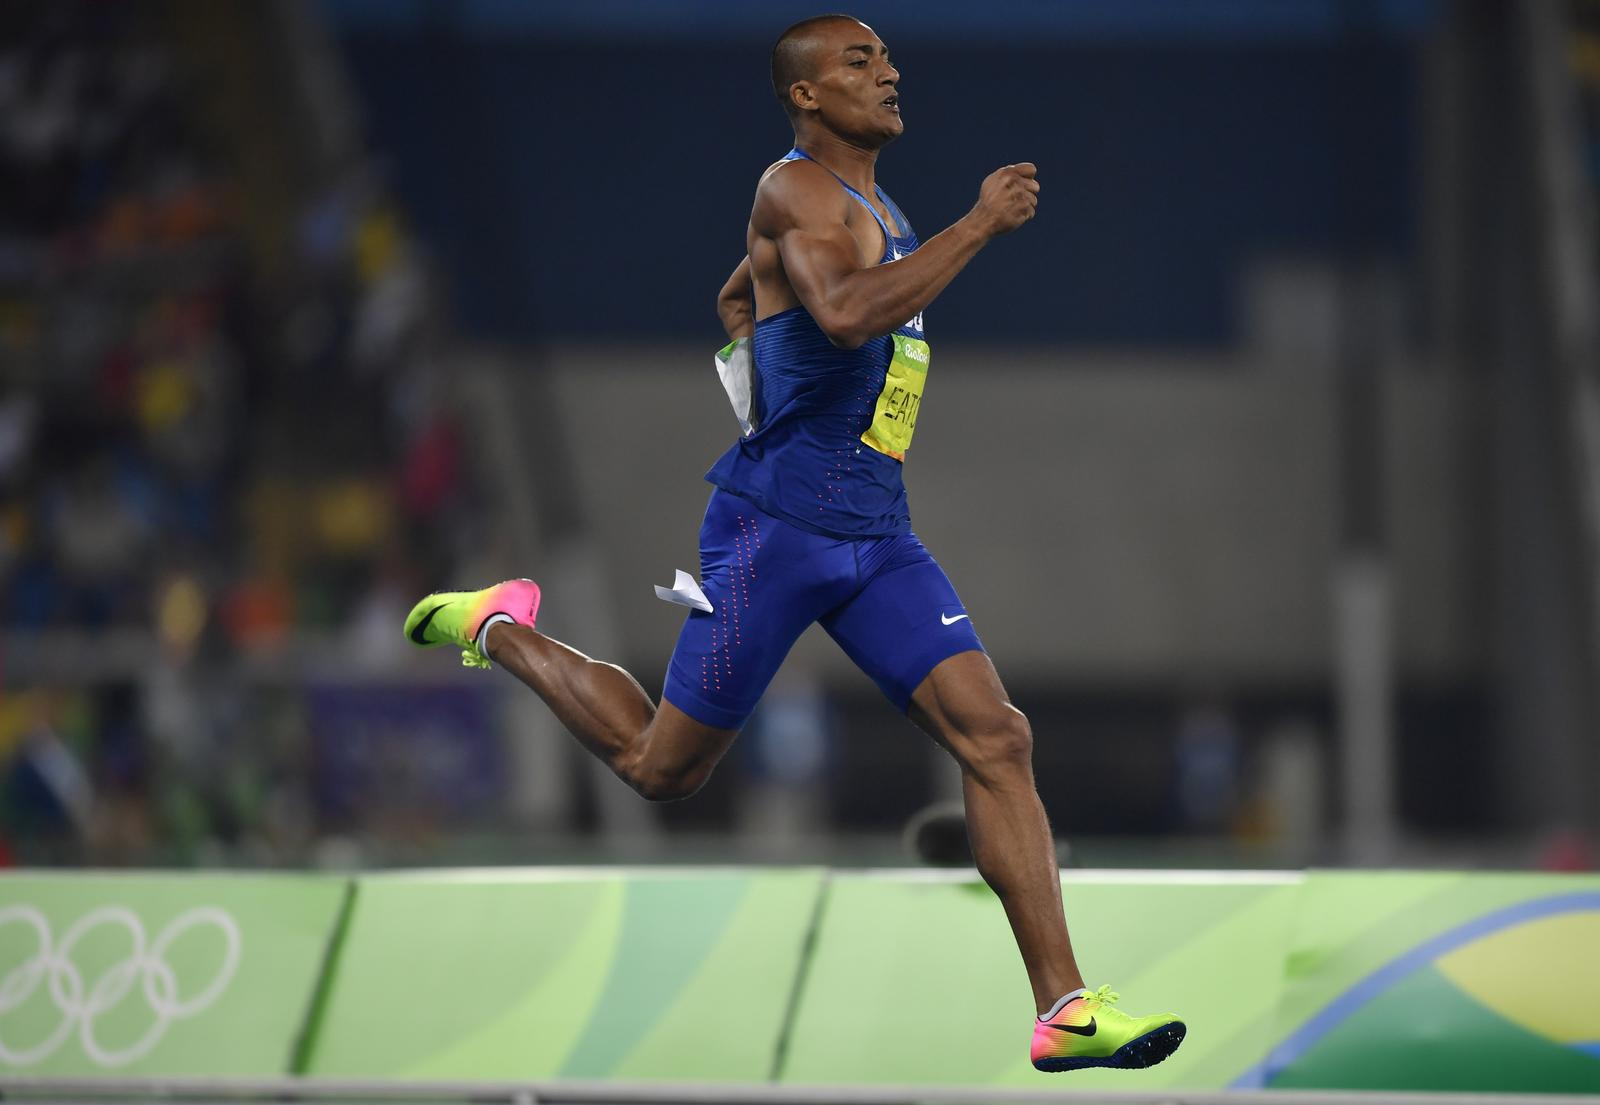 DECATHLON GOLD WITH NIKE INNOVATIONS